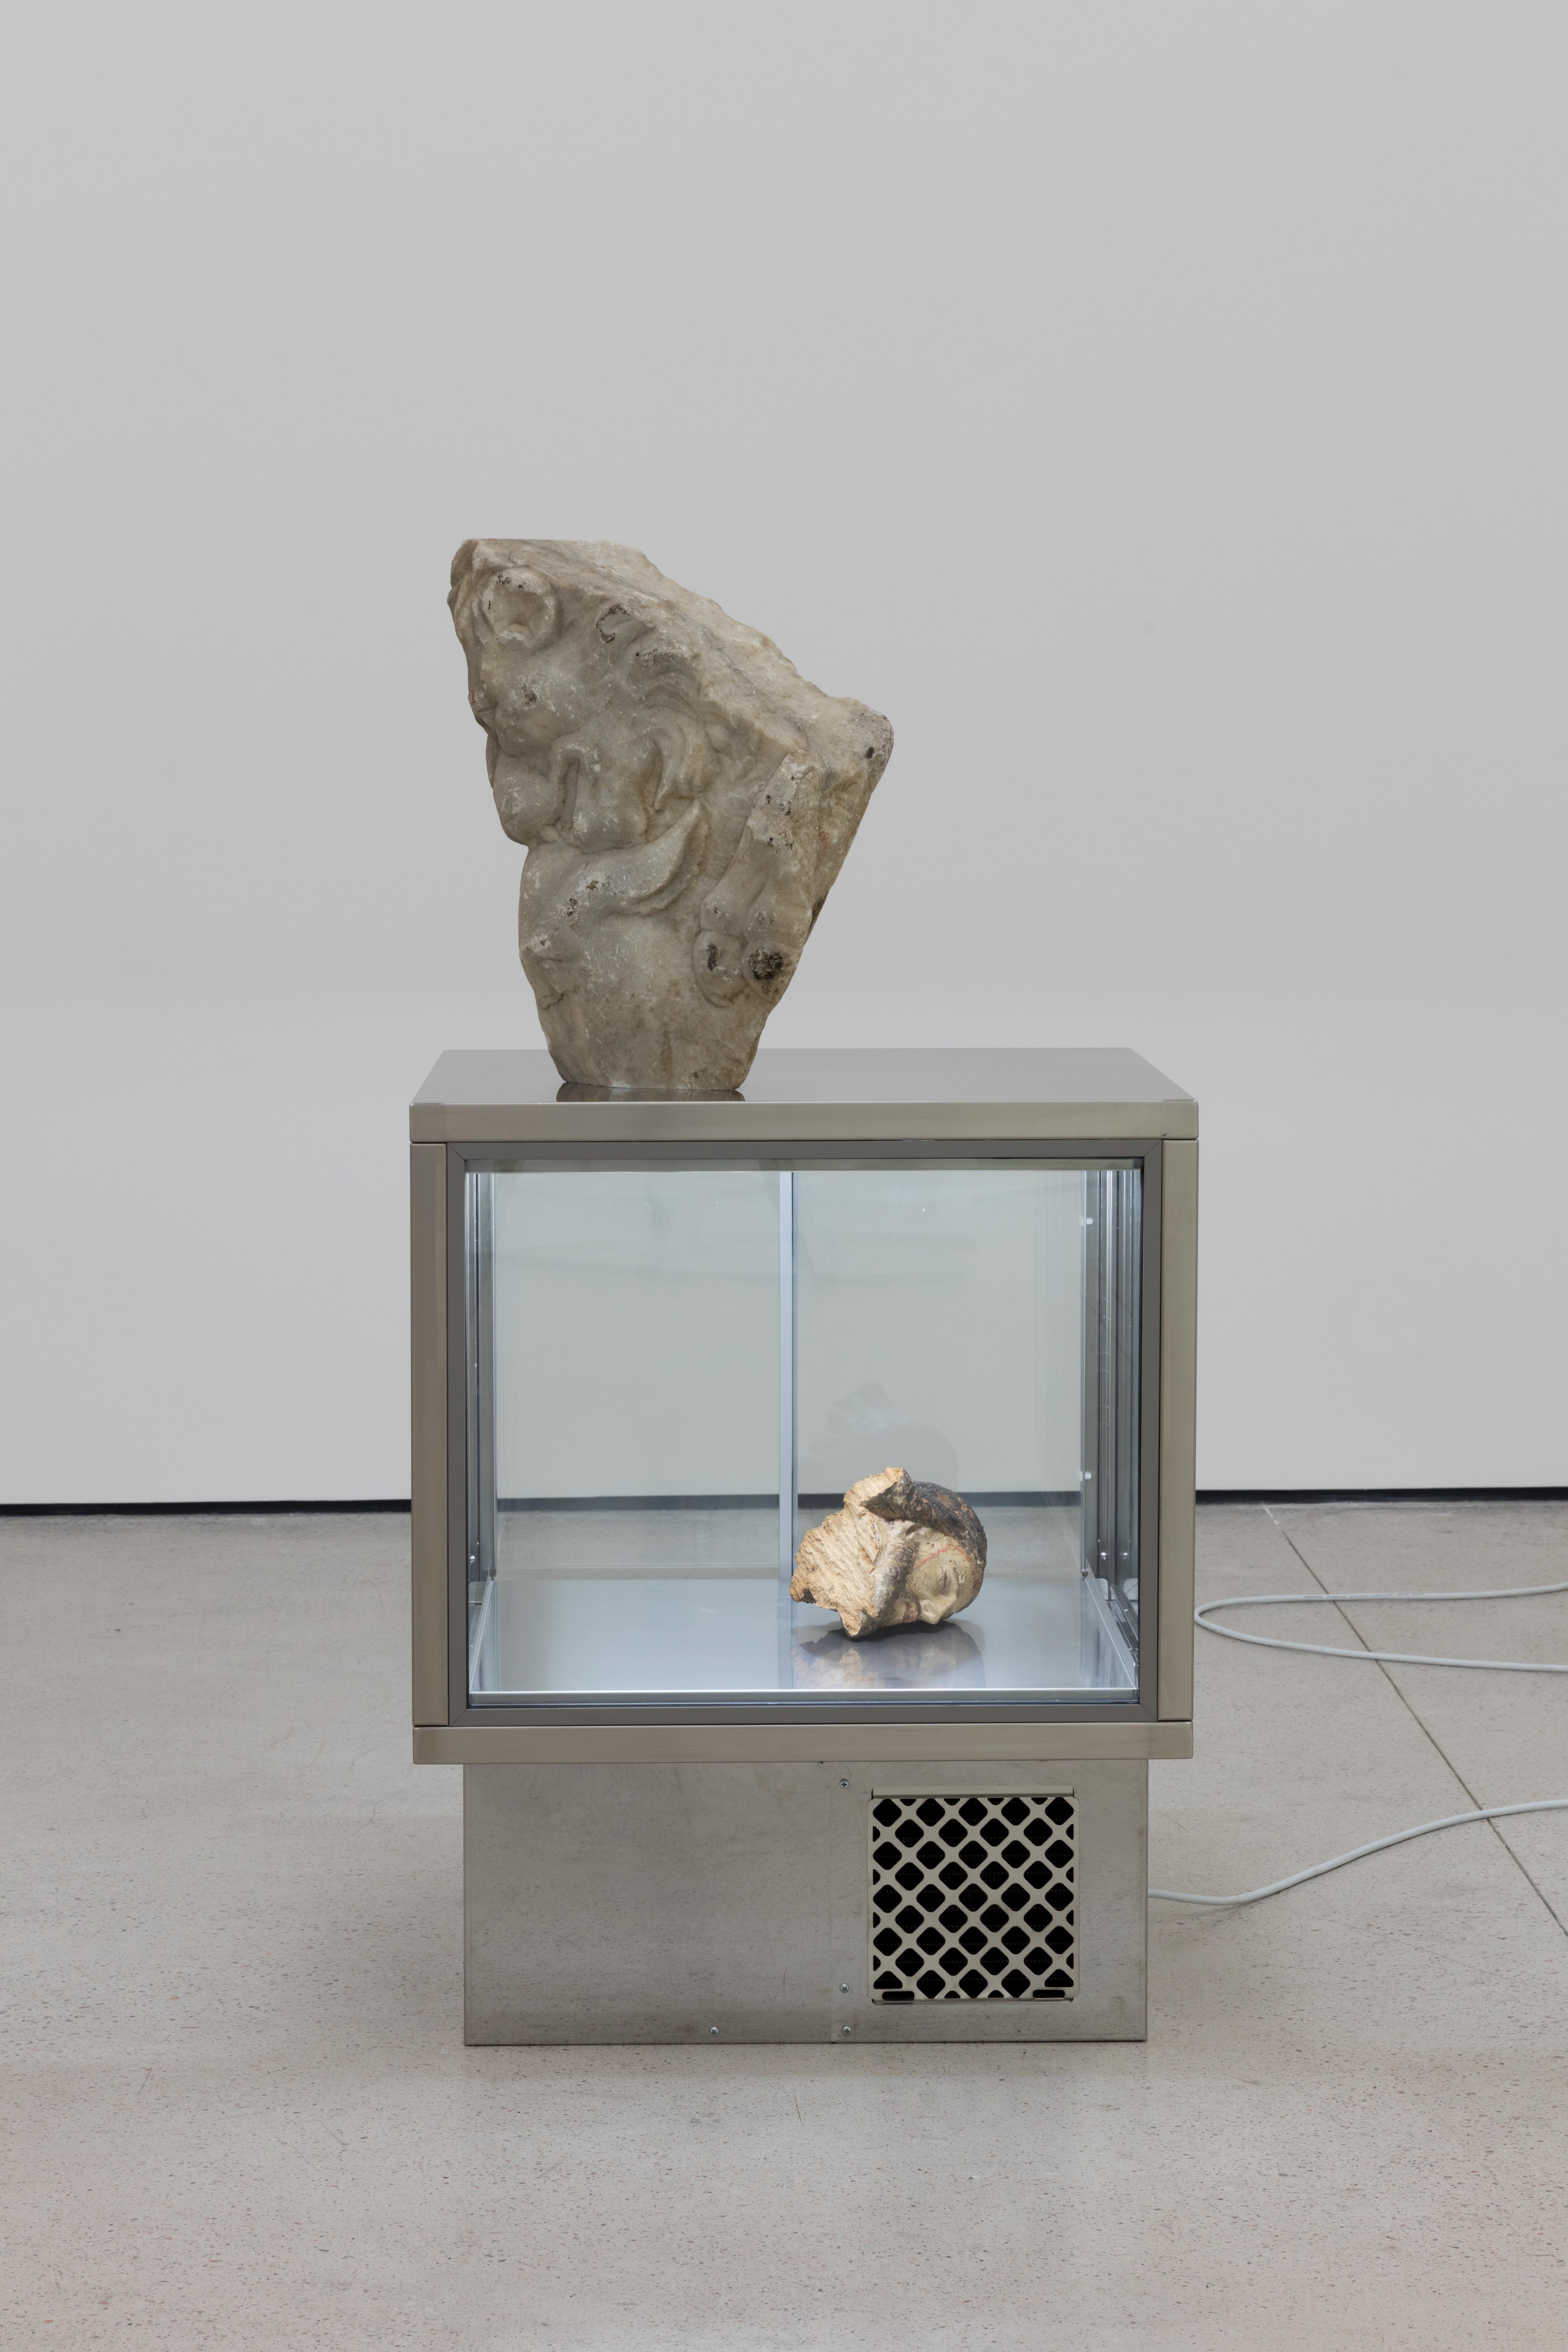 Image: Danh Vō, Lick Me, Lick Me, 2016. Refrigerator, wooden head of polychrome Jesus, 16th century and marble Roman sculptures, I-II century A.D. 126 x 64. 5 x 61 cm. Exhibition view, Danh Vō, White Cube Hong Kong. 7 September – 12 November 2016 . © Danh Vō. Photo © White Cube (Kitmin Lee).